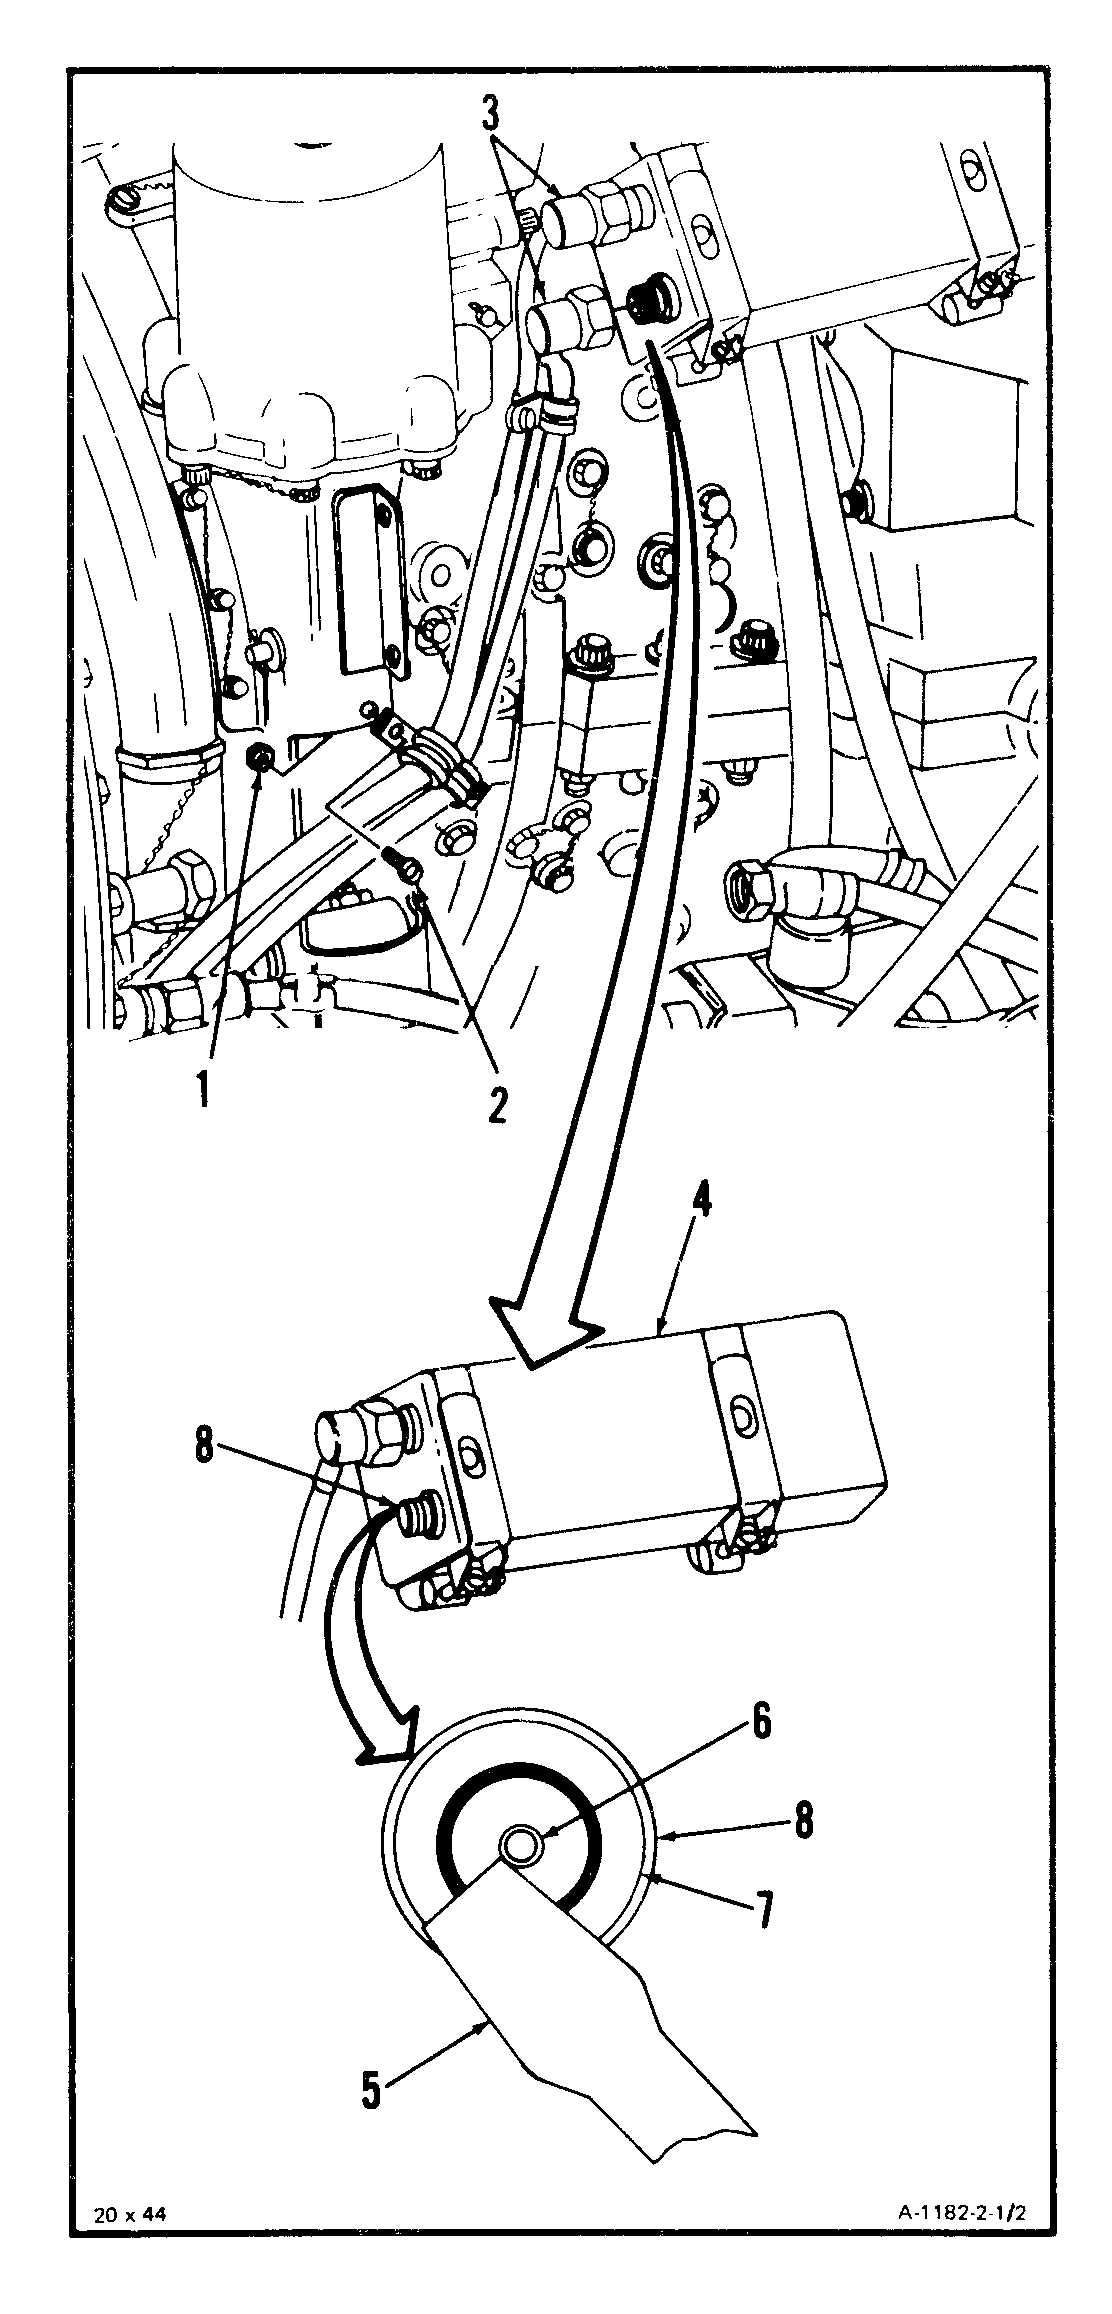 REMOVE INTERSTAGE AIR-BLEED ACTUATOR